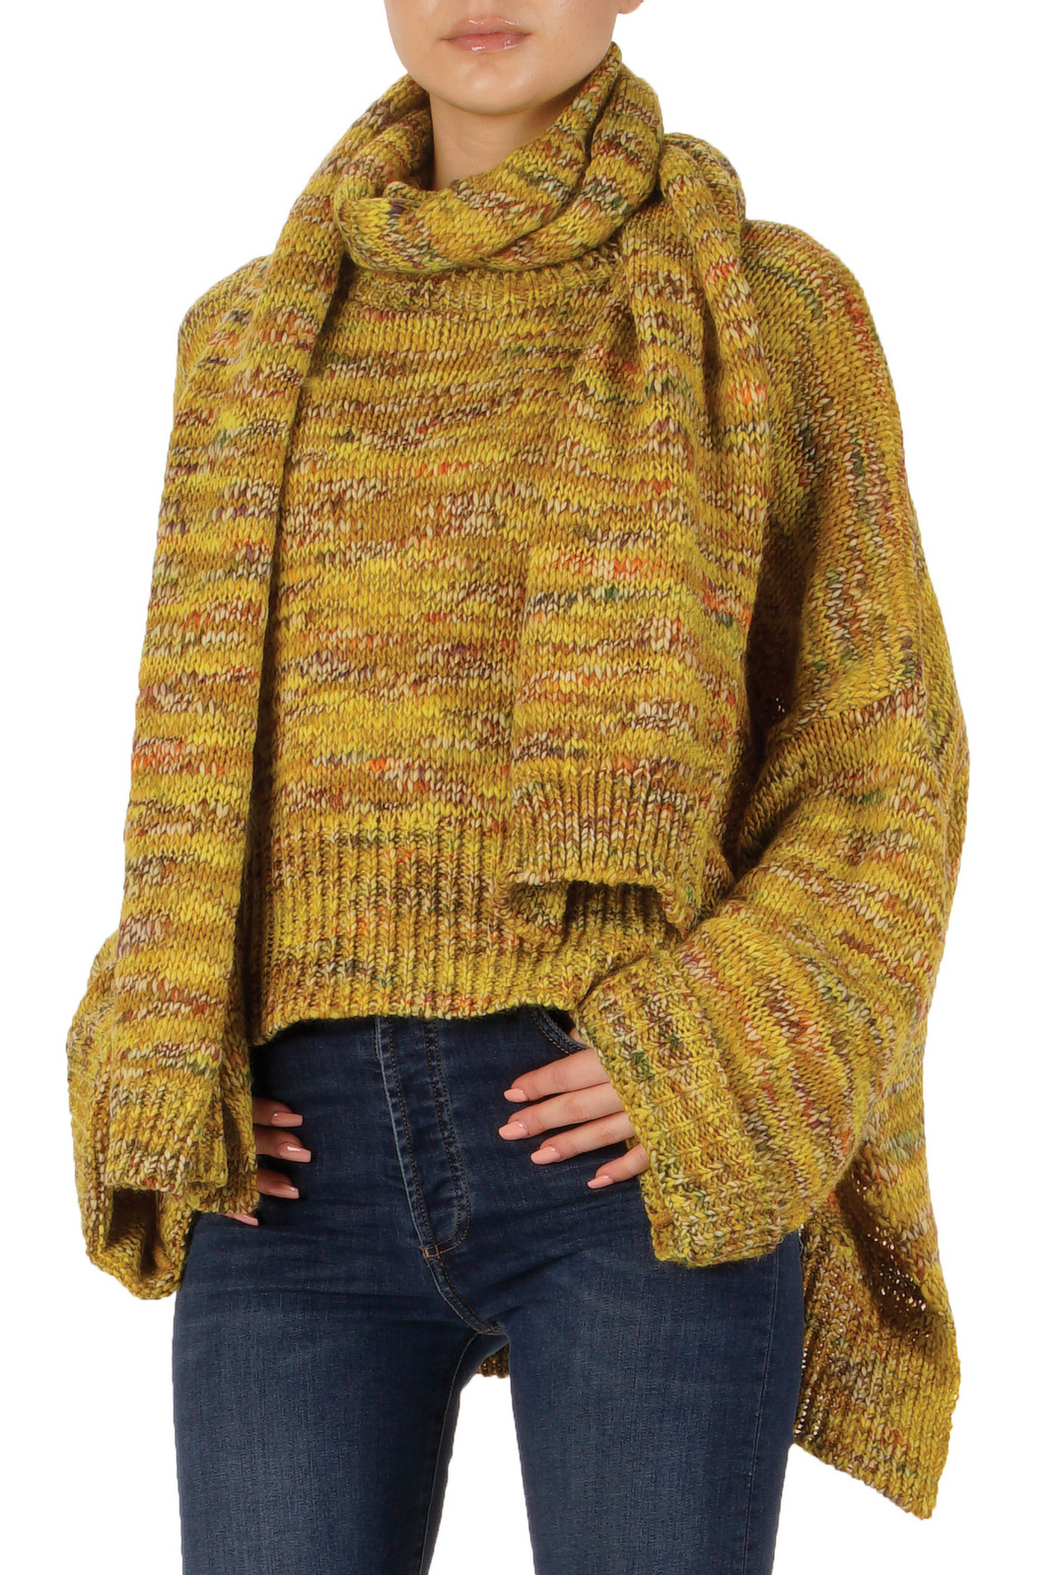 Elan Autumn Leaves Sweater and Scarf Set - Front Full Image